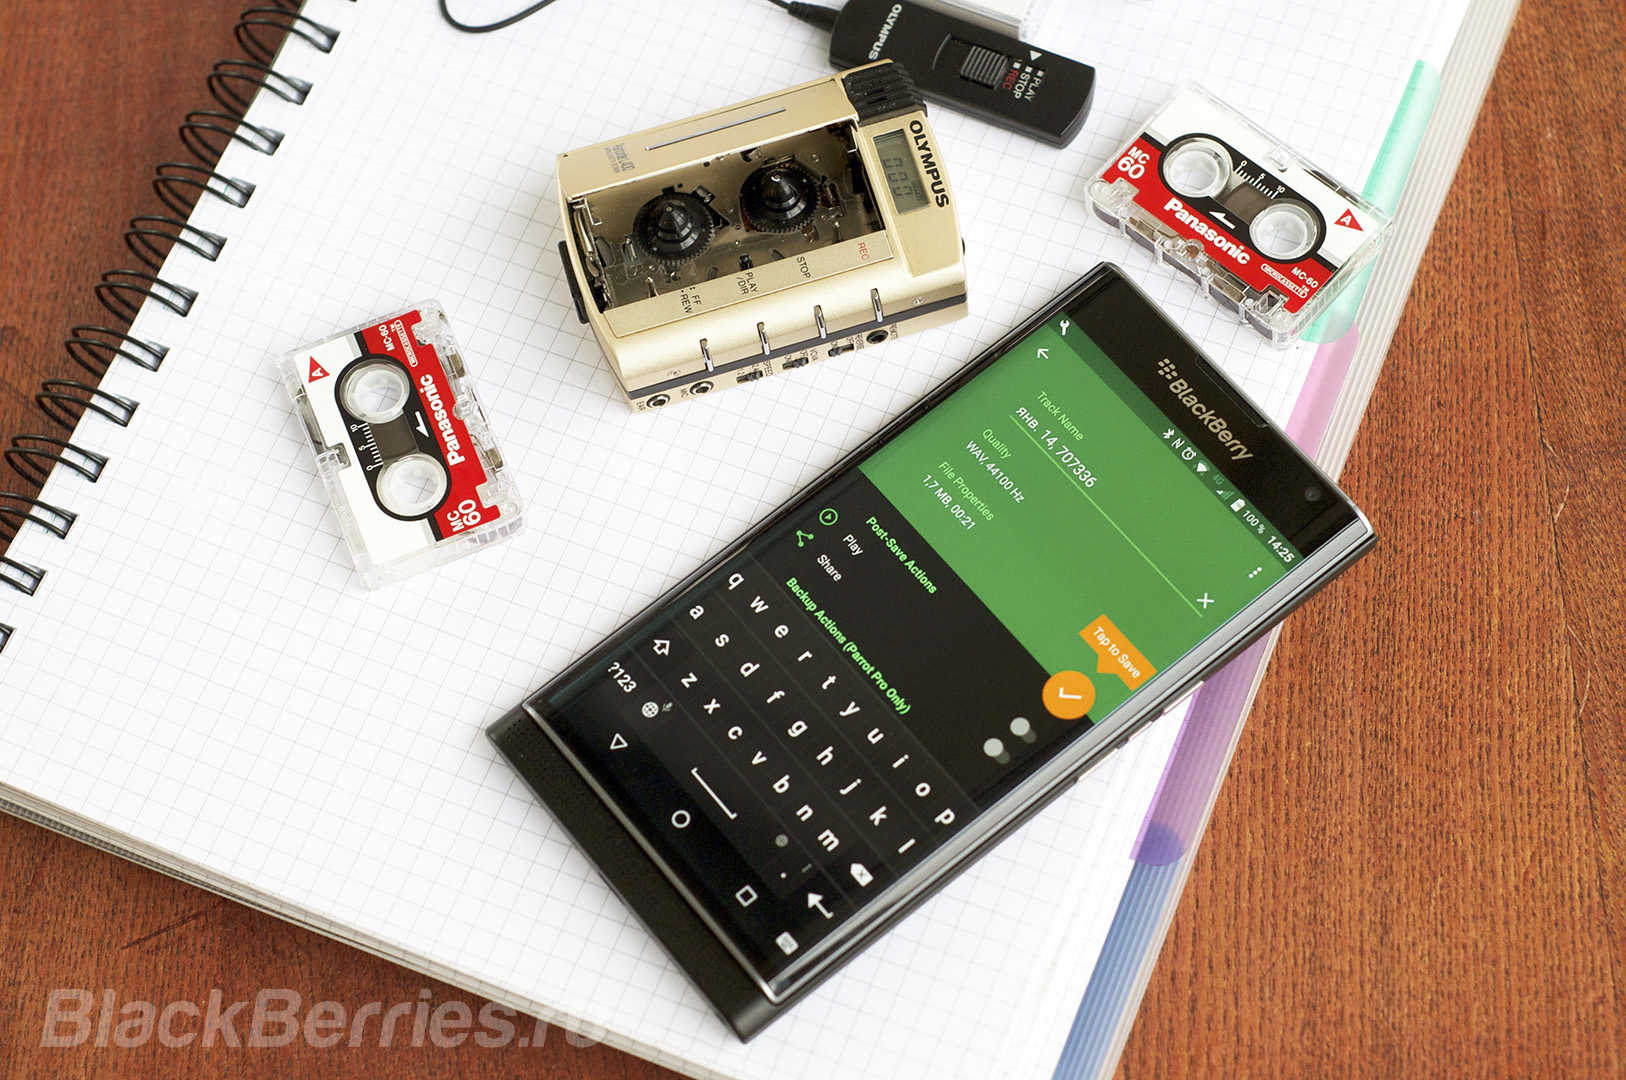 BlackBerry-Android-Recorder-07